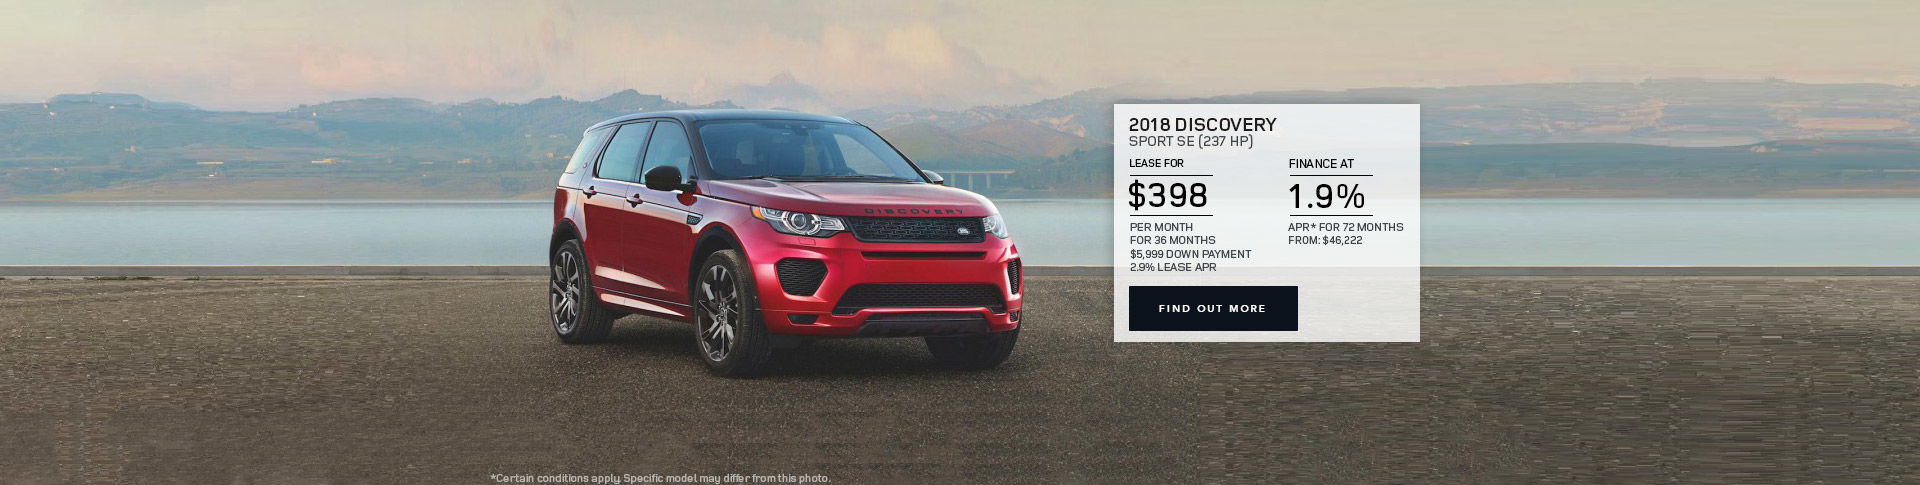 2018 Discovery